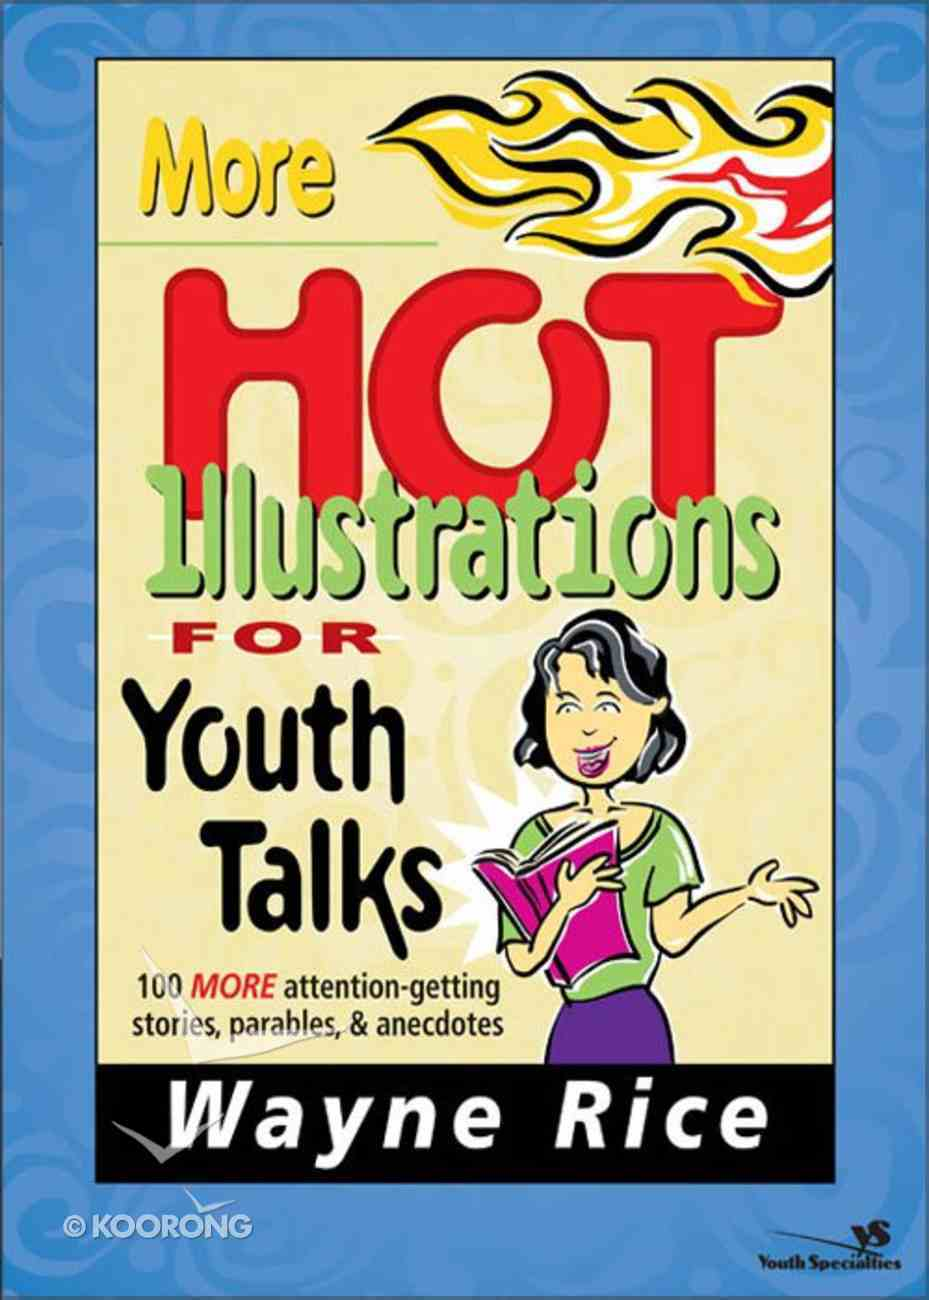 More Hot Illustrations For Youth Talks eBook